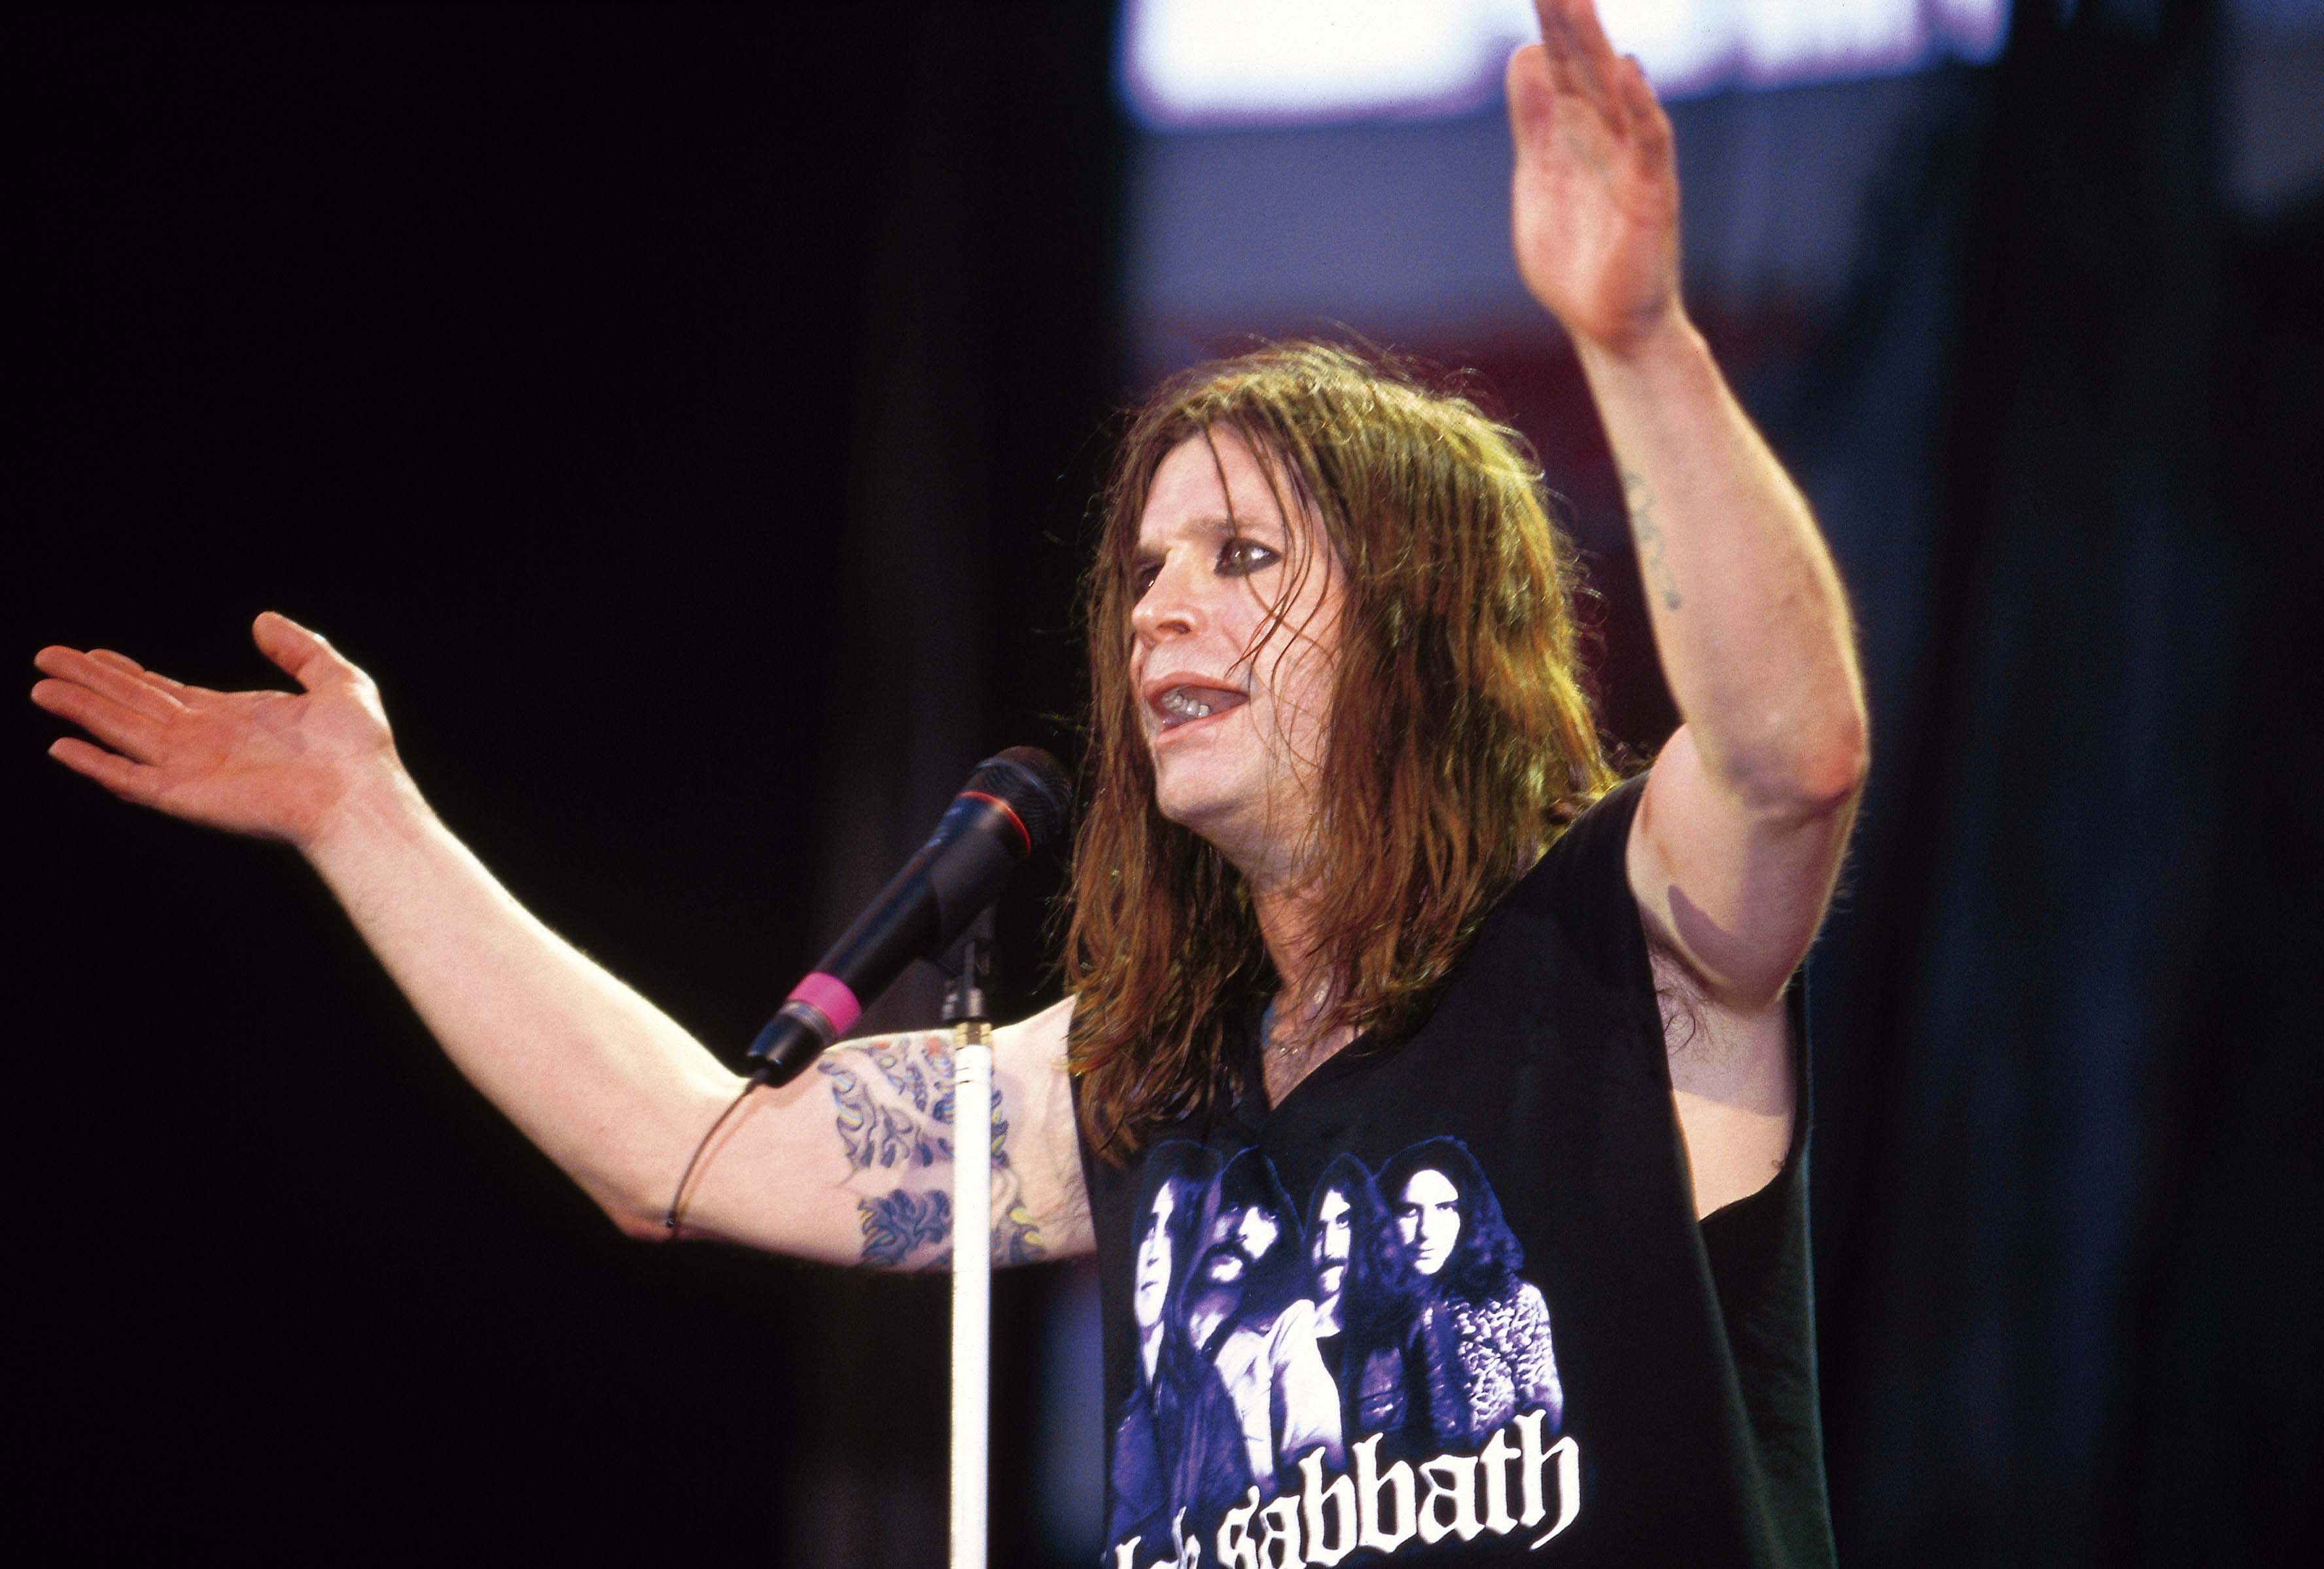 Ozzy Osbourne performing live onstage with Black Sabbath on December 1 at the National Exhibition Center in Birmingham, UK.